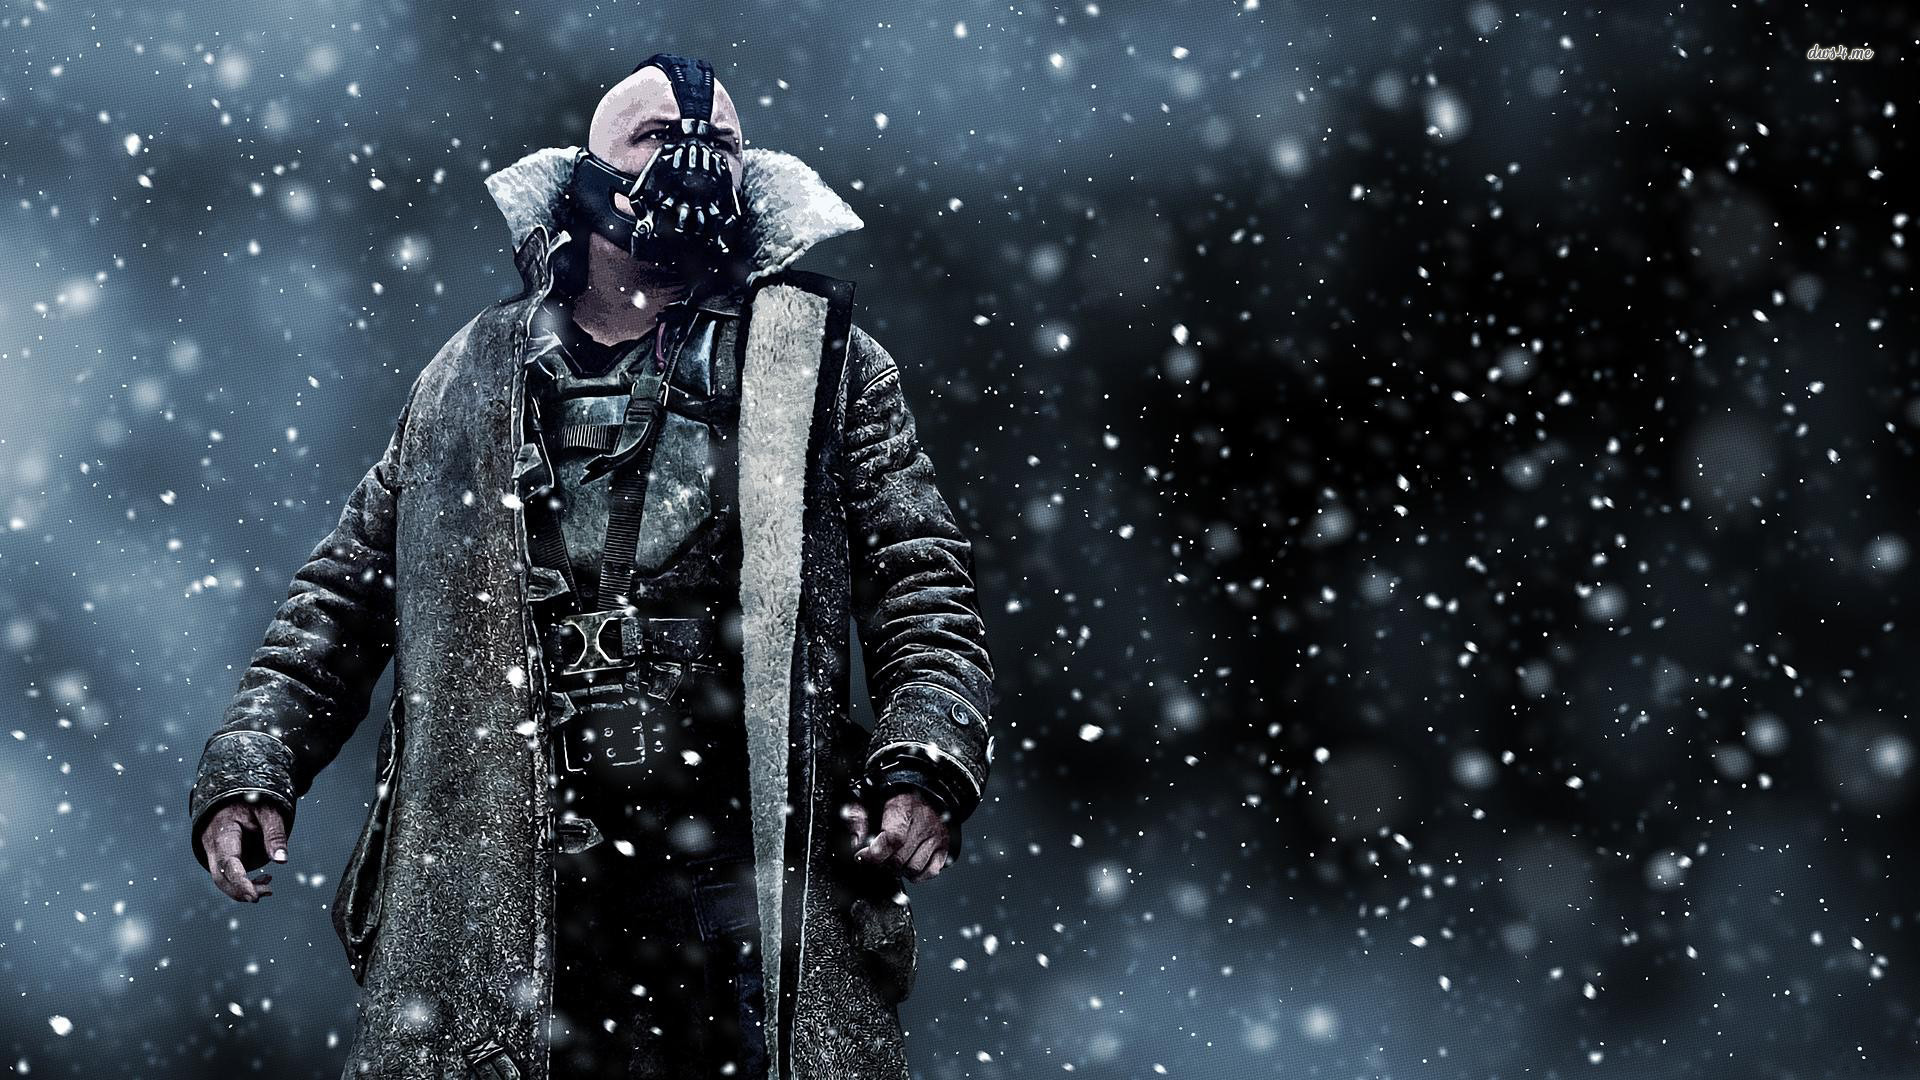 Bane dark knight rises wallpaper wallpapersafari for Dark knight rises wall mural